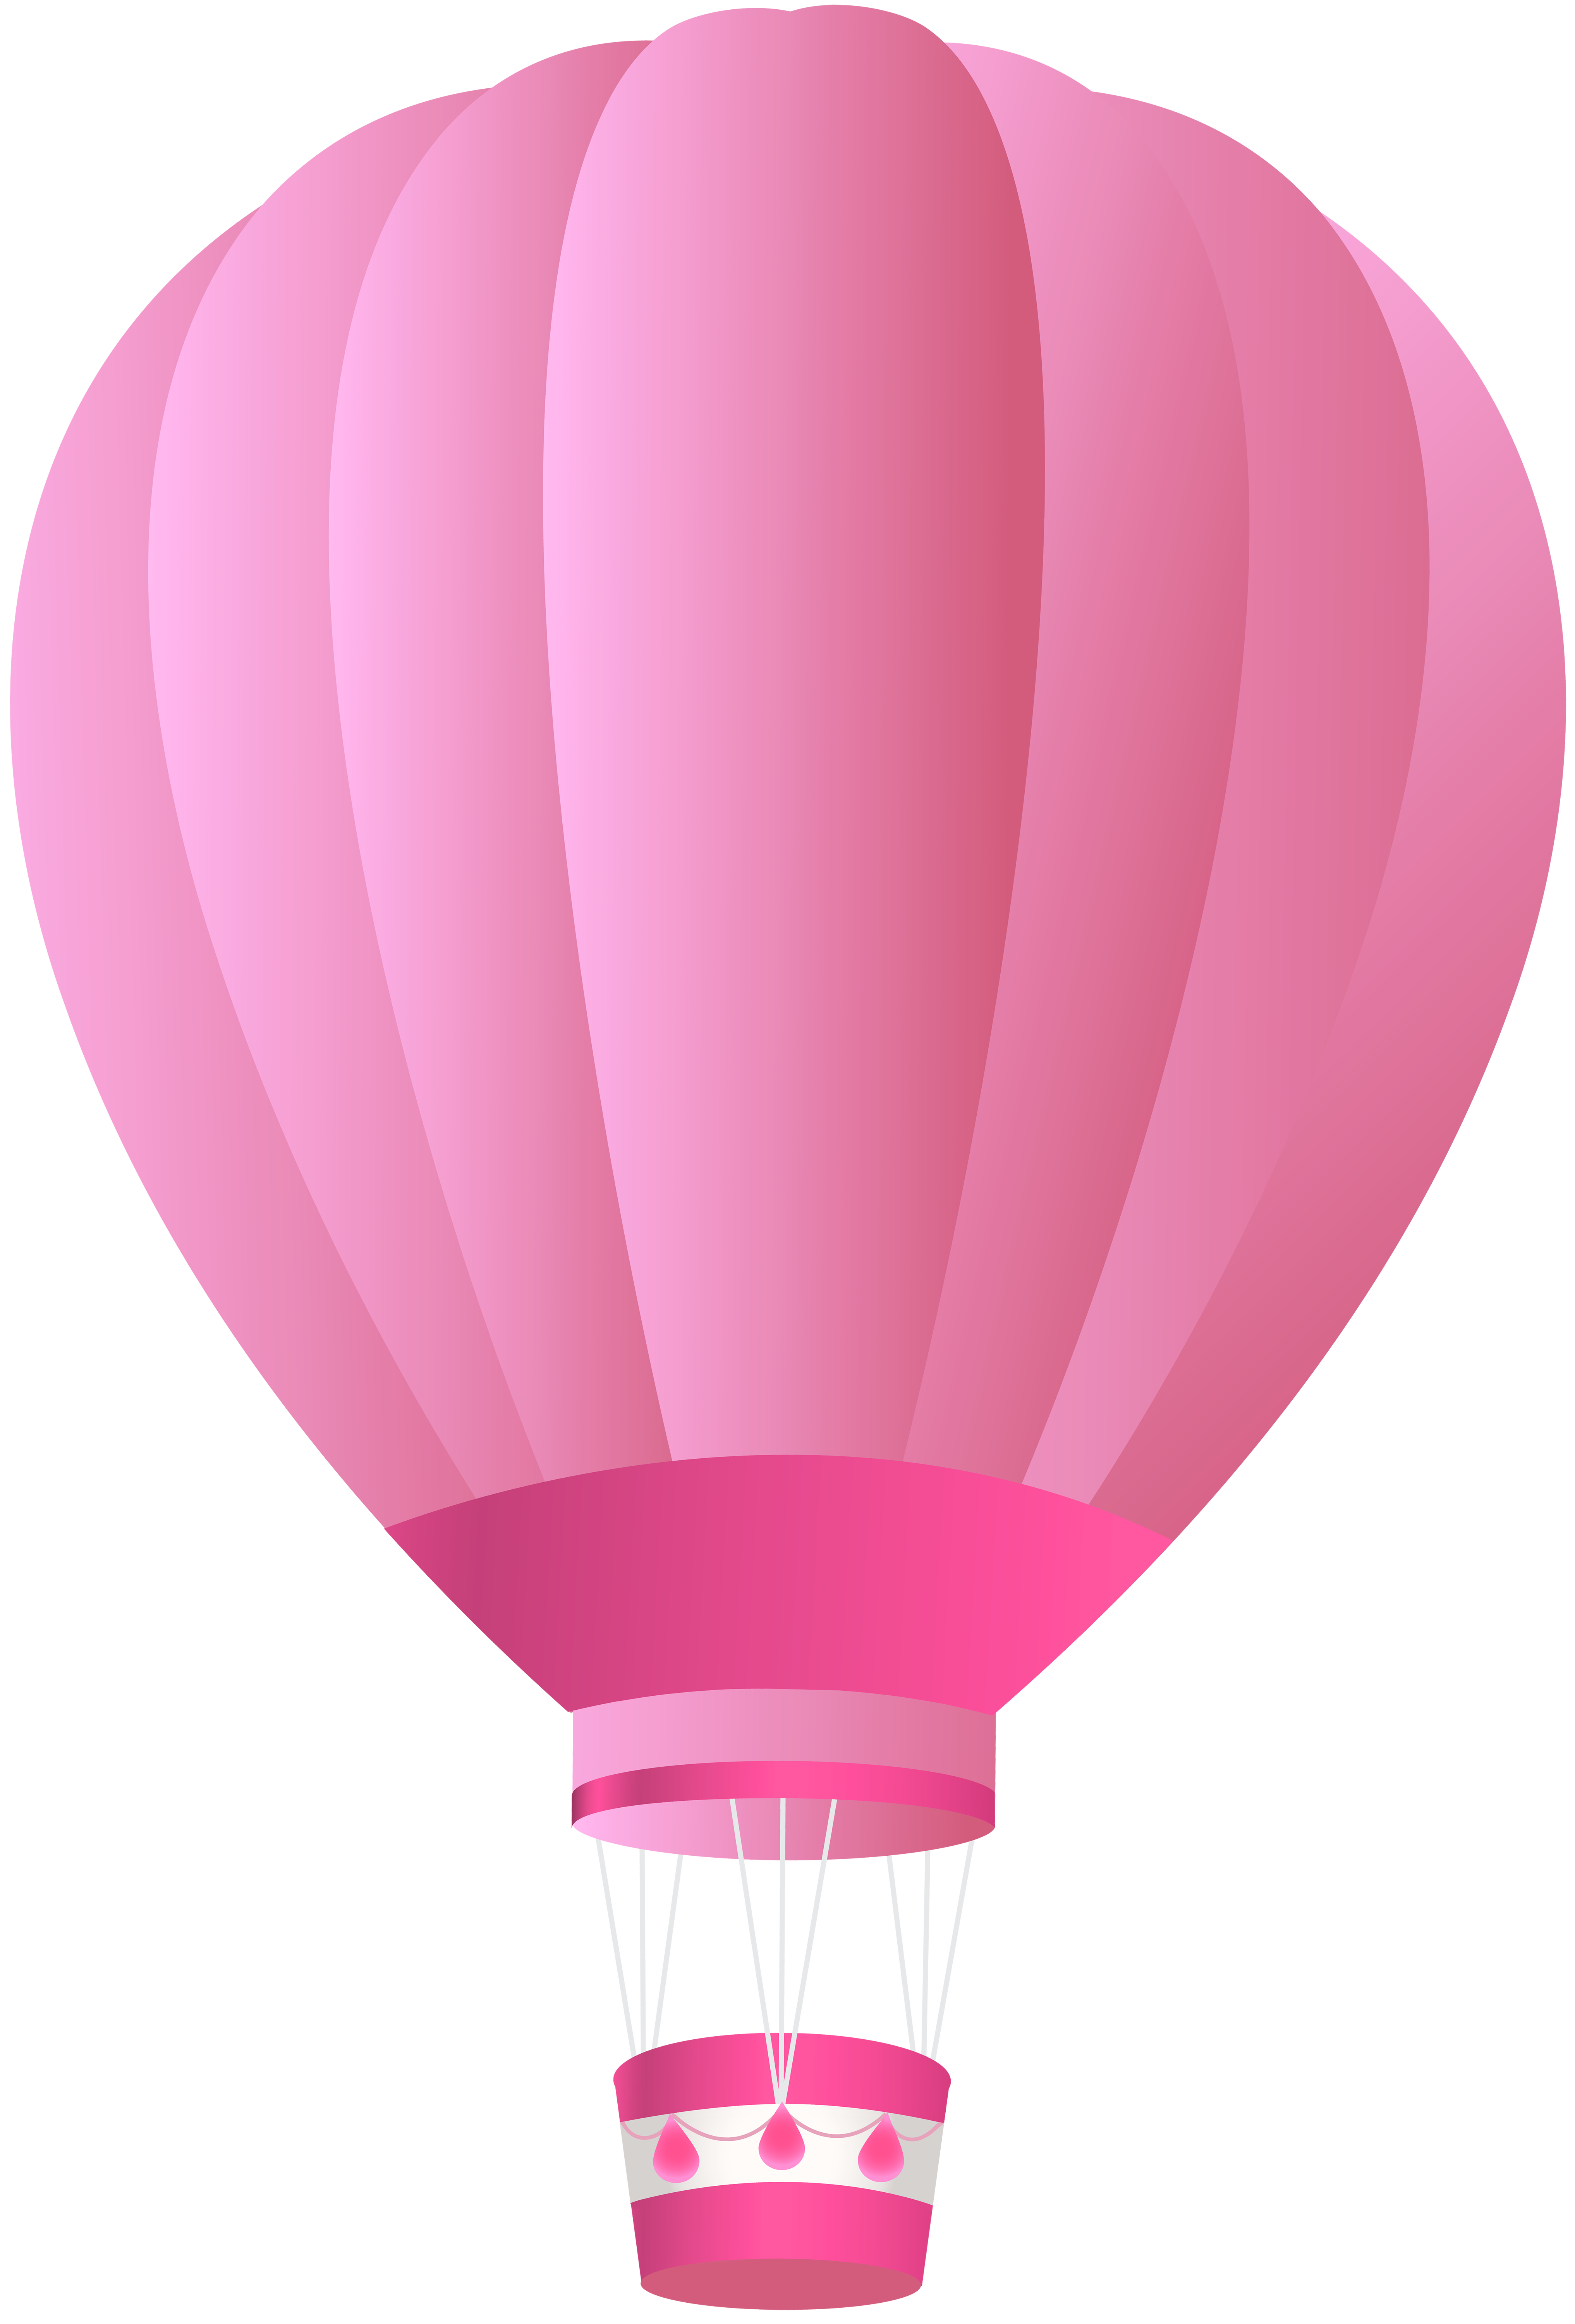 Pink hot air balloon png. Clip art image gallery